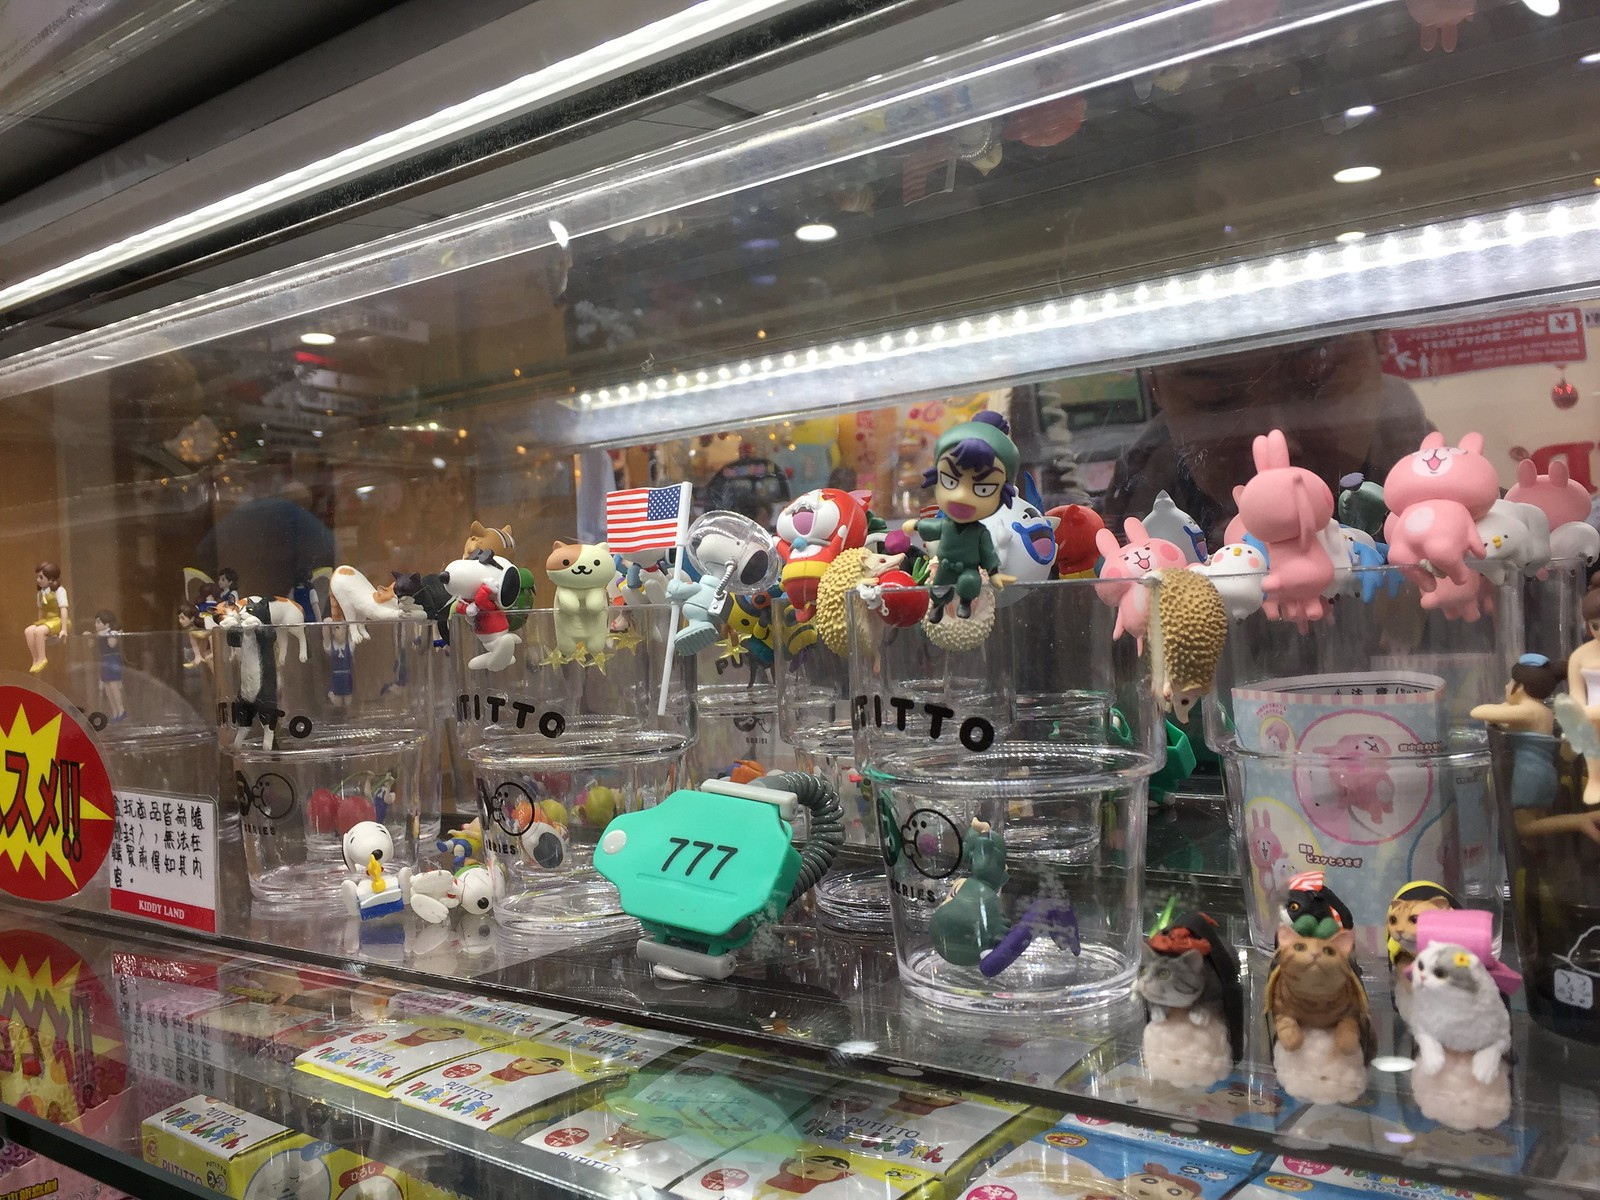 3. Kiddy land in Harajuku